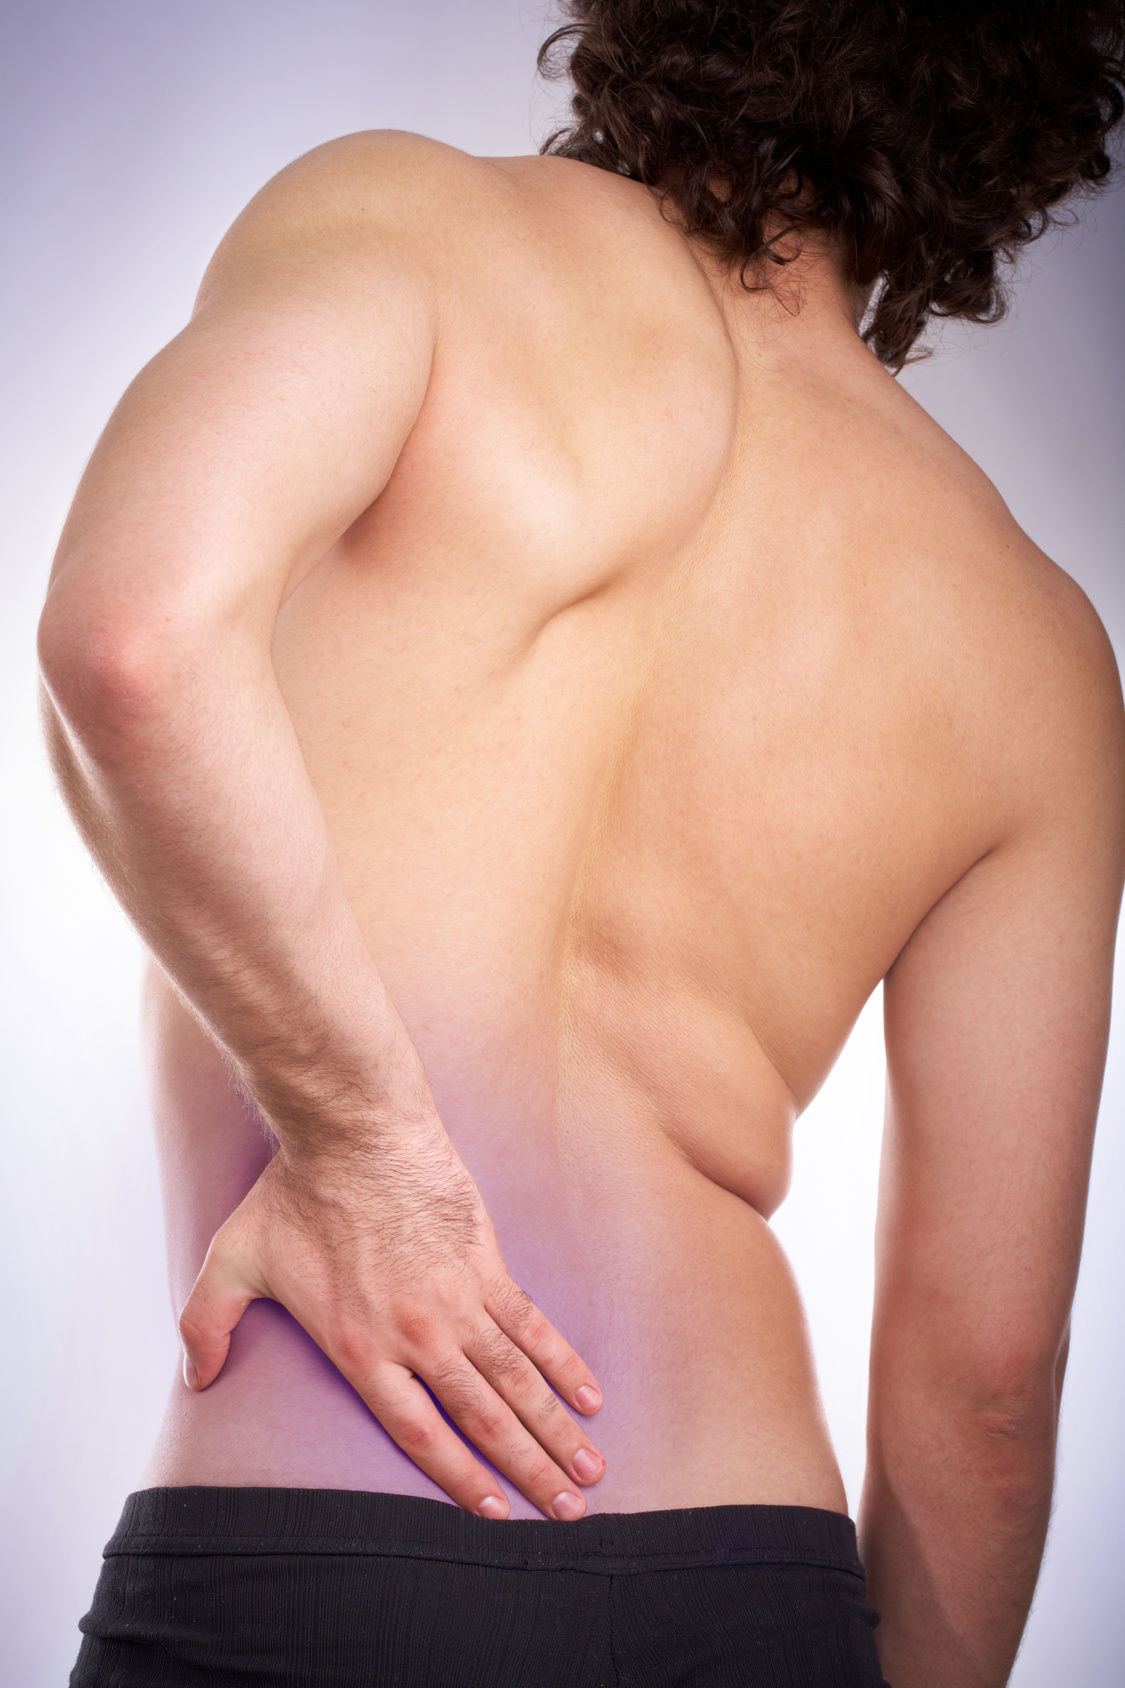 What to do when suffering from Low Back Pain